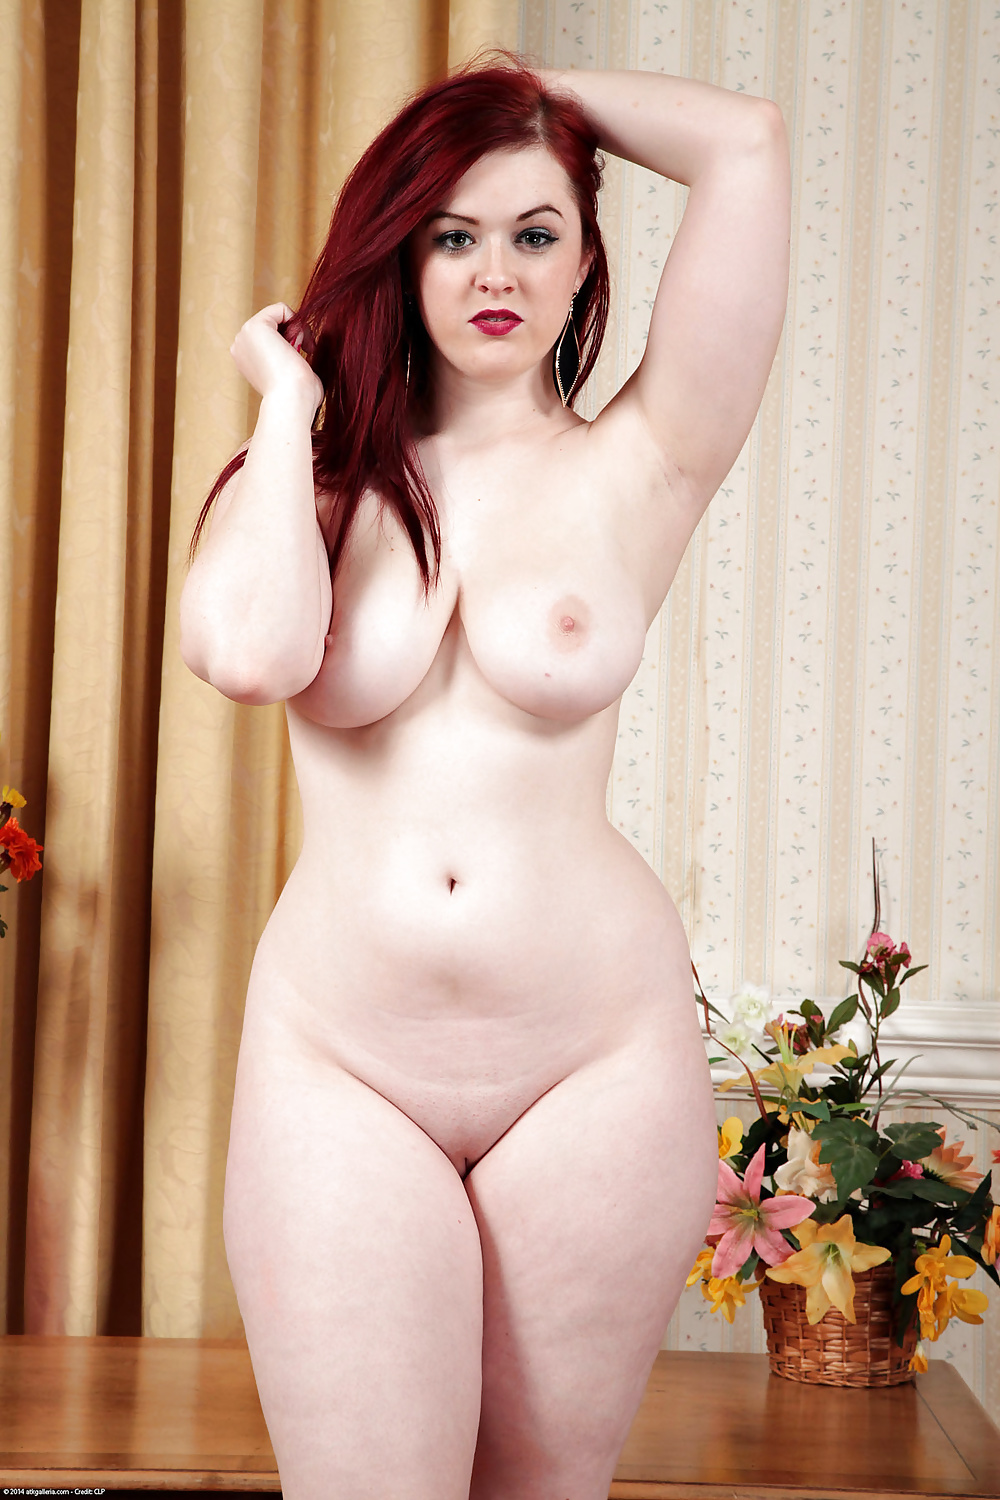 Nude Freckled Redheads